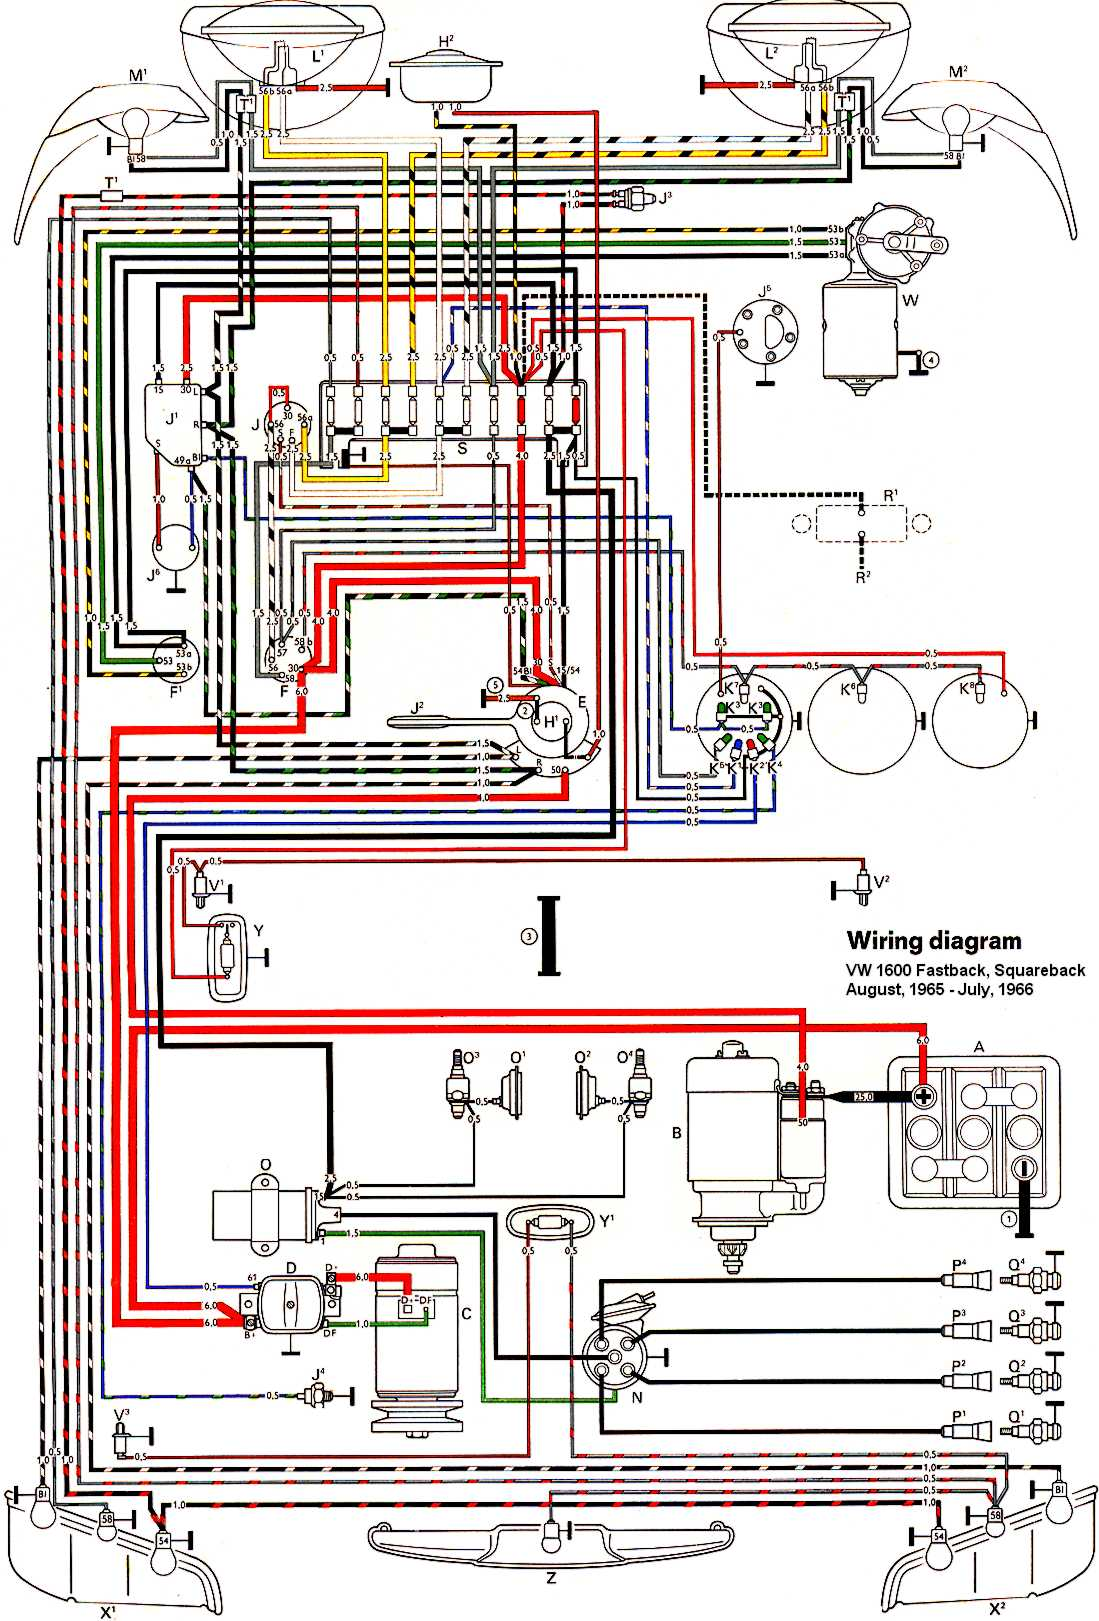 type3_1600_66 vw bus wiring diagram 1965 vw bus wiring diagram \u2022 wiring diagrams 1973 vw beetle wiring diagram at virtualis.co